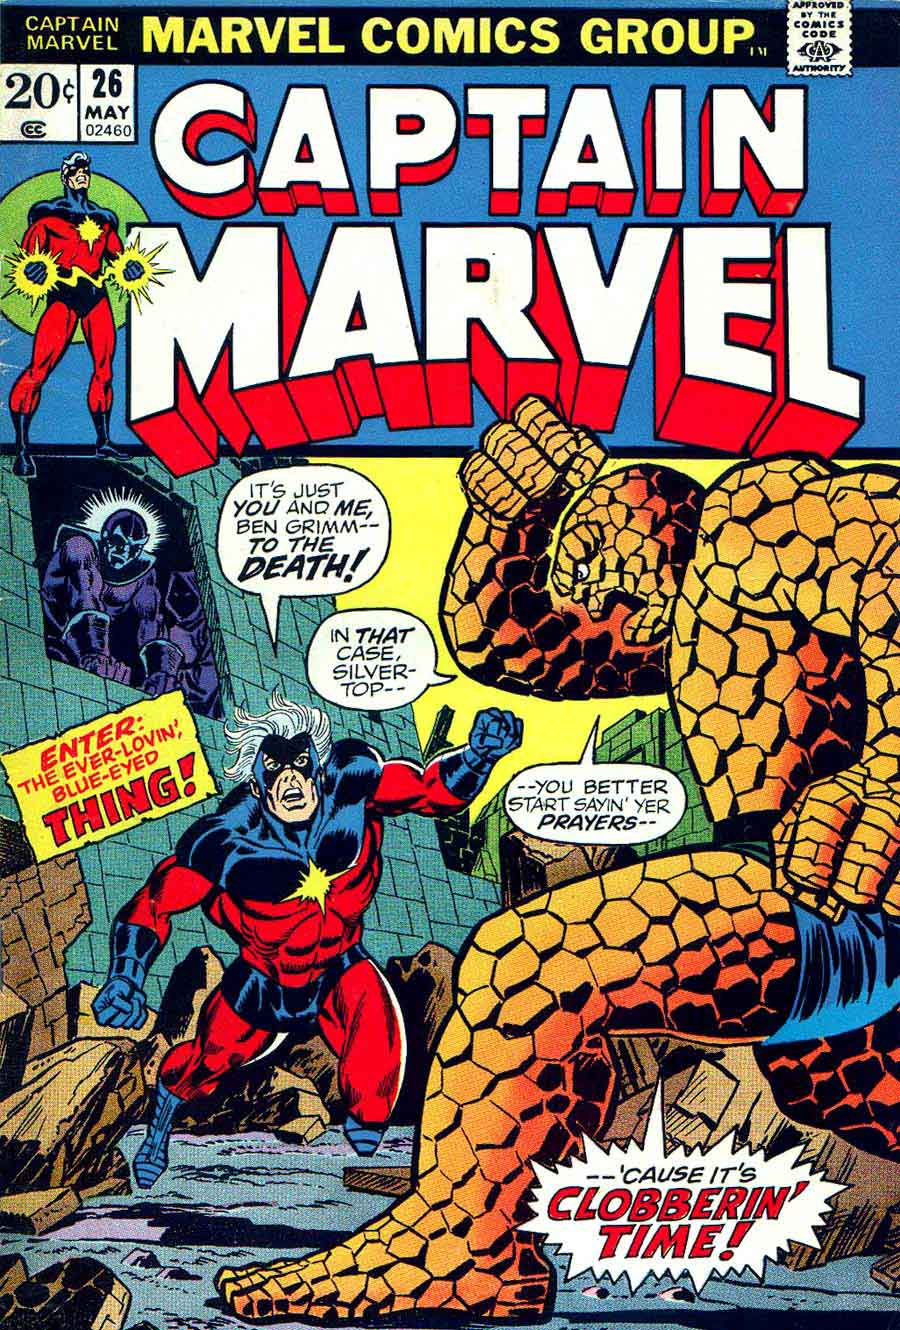 Captain Marvel #26 marvel 1970s bronze age comic book cover art by Jim Starlin